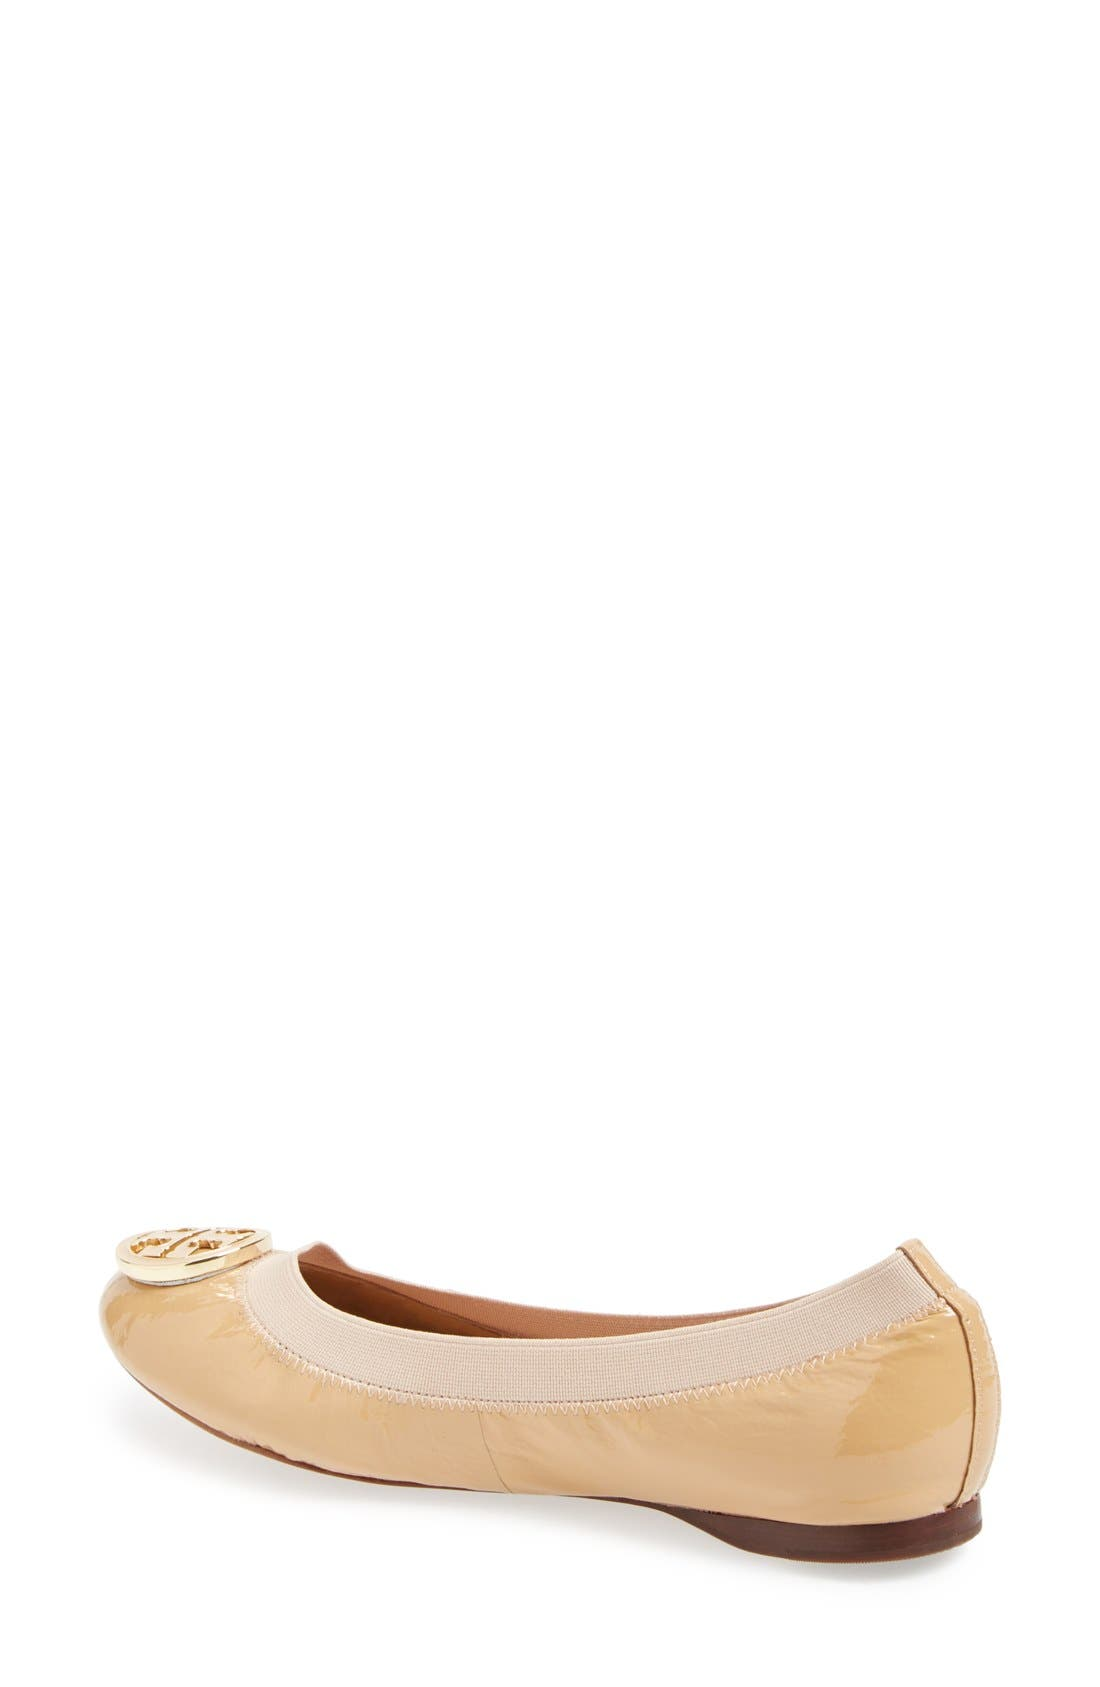 Alternate Image 2  - Tory Burch 'Caroline' Ballerina Flat (Women)